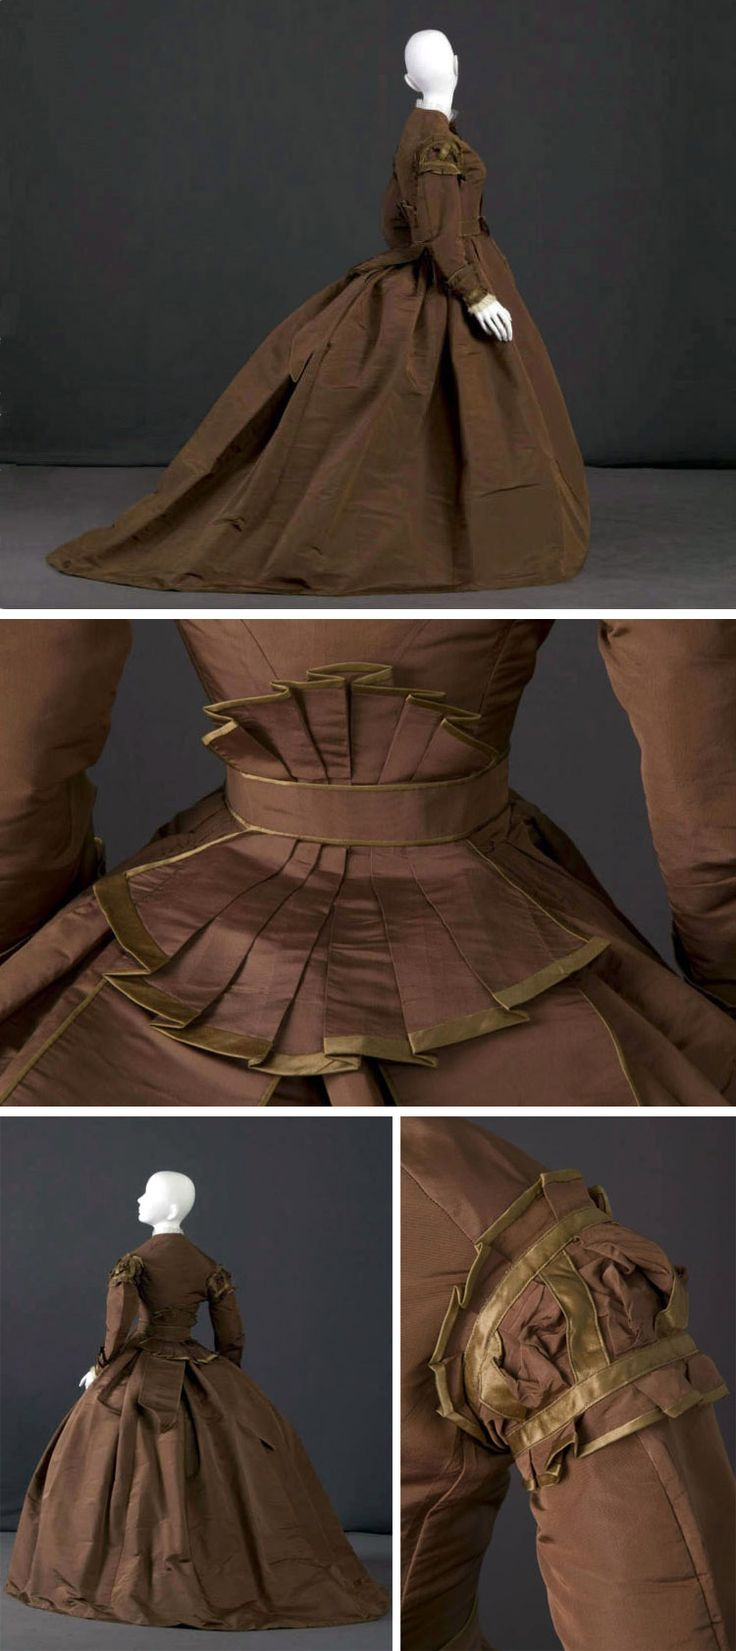 Trousseau dress, 1869. Dark brown silk poplin trimmed with light brown-yellow silk satin. Bodice has crew neckline with long sleeves & center front button closure. Skirt is full with cartridge pleats into waistband & small train. Belt has fishtail design at center back and closes with hook & eyes. Chicago History Museum